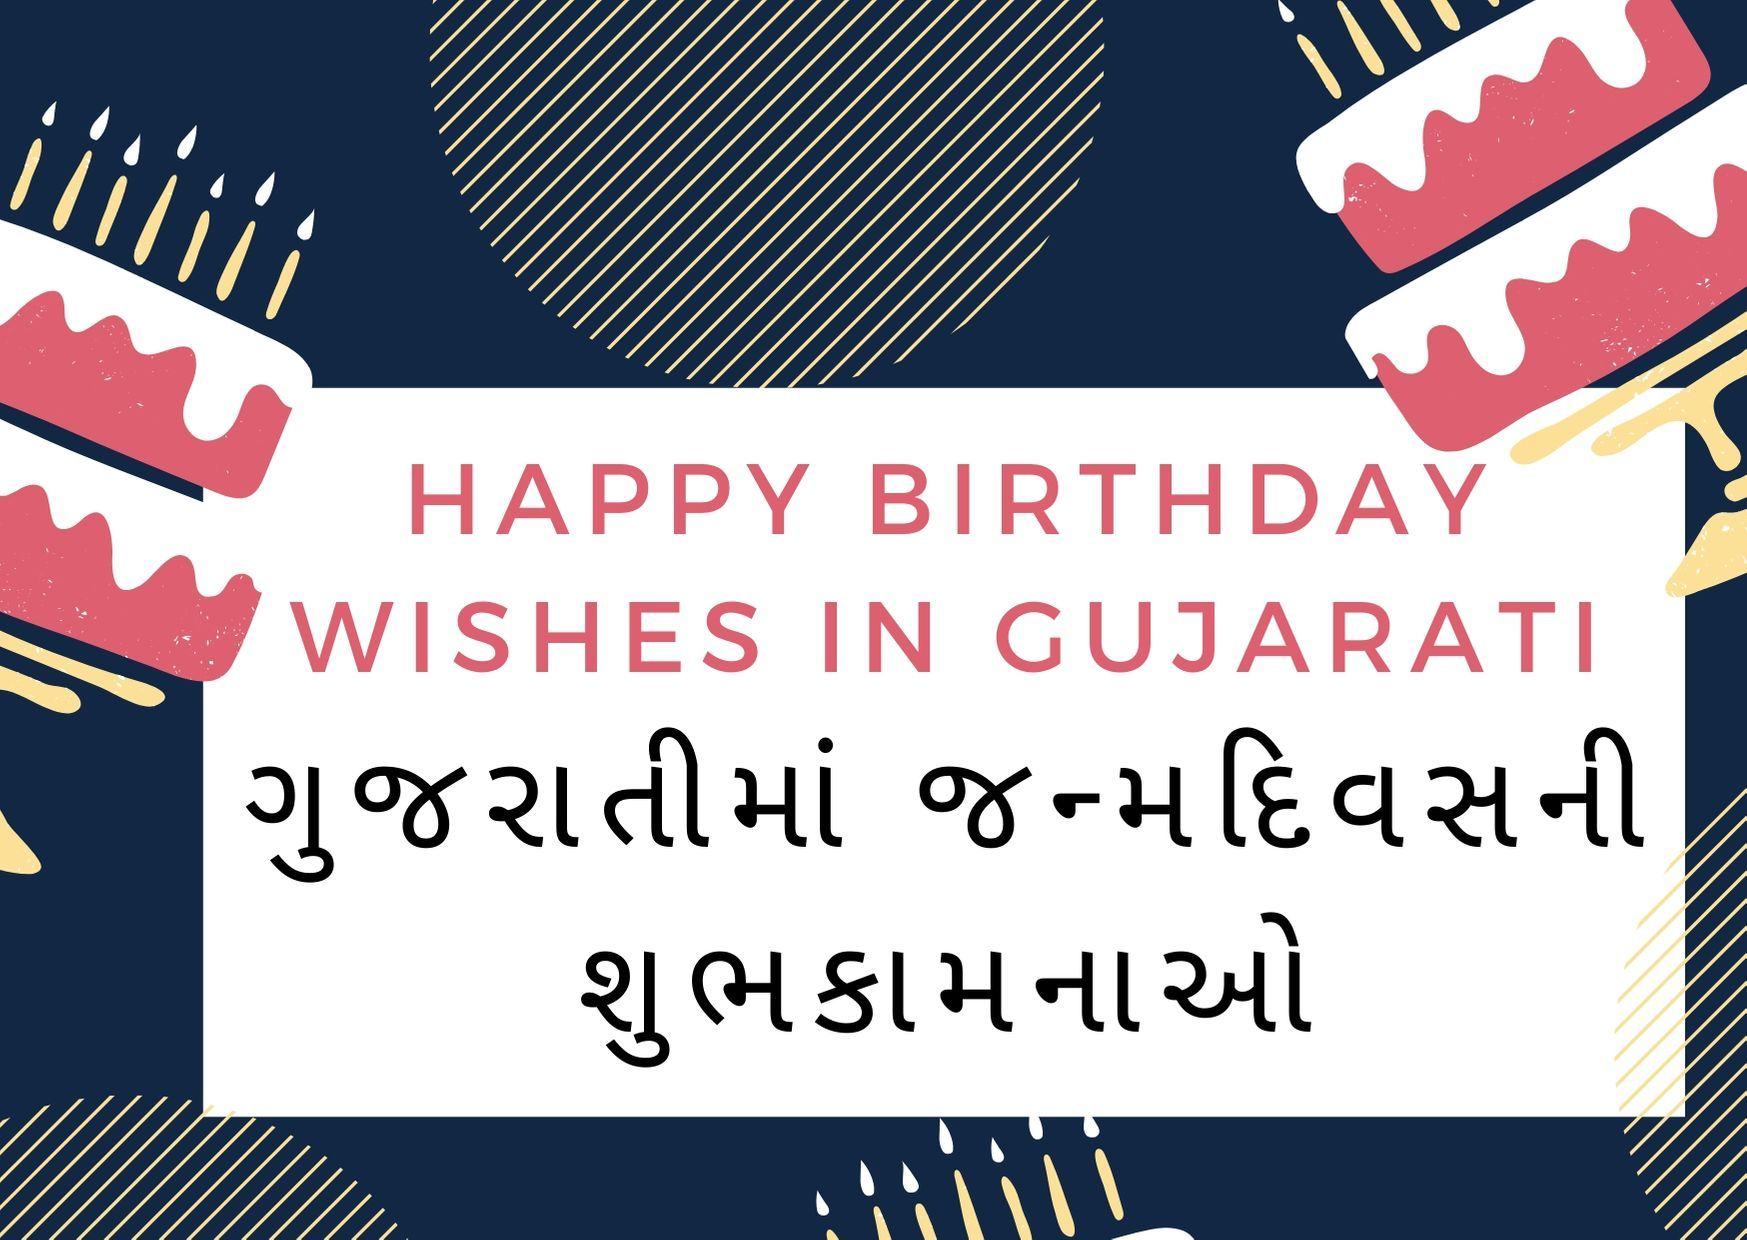 Happy Birthday Wishes In Gujarati in 2020 Birthday